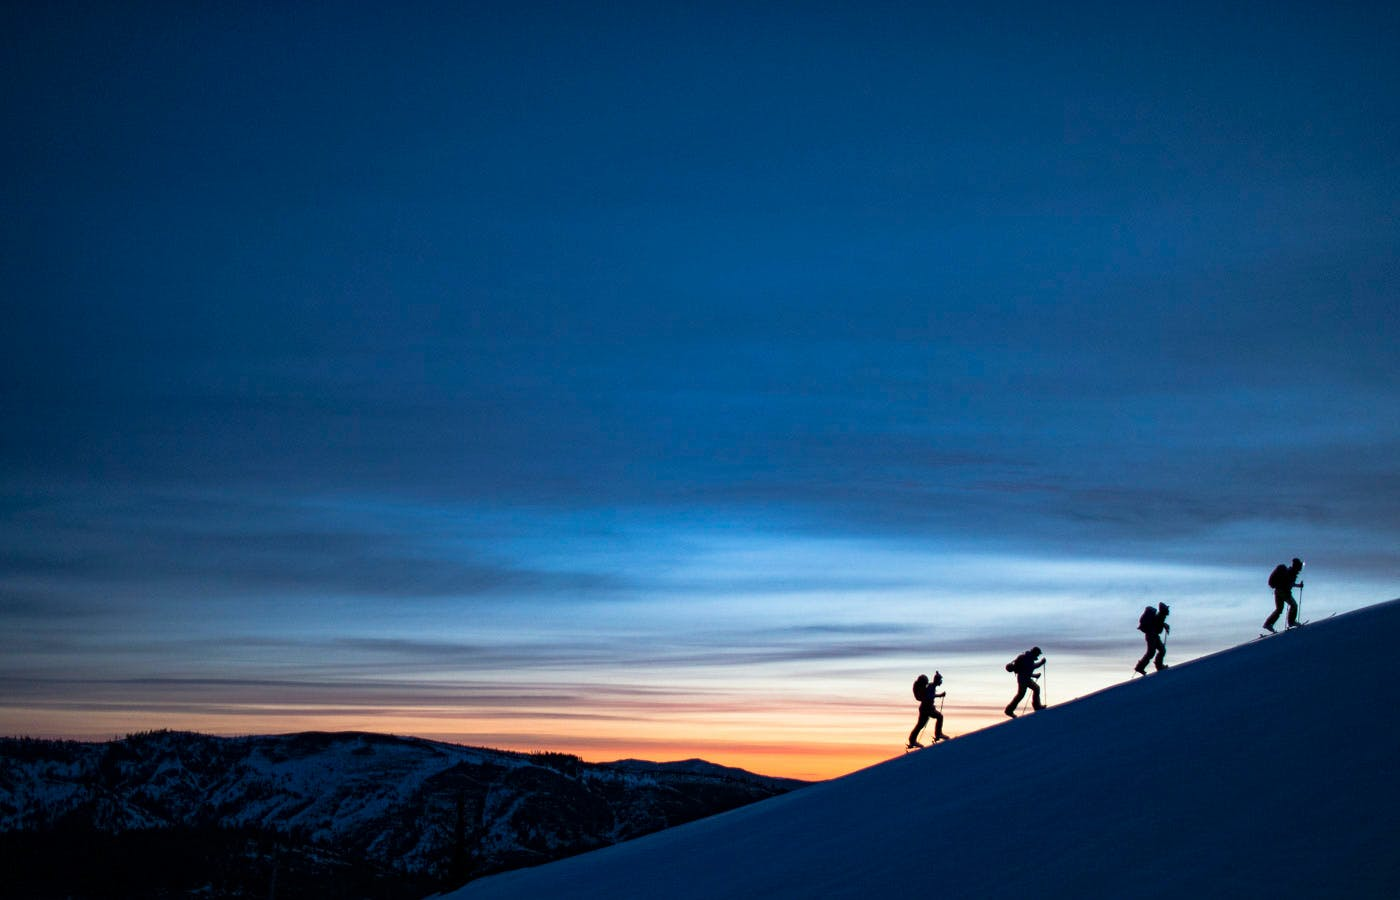 Hikers hiking up mountain at sunset